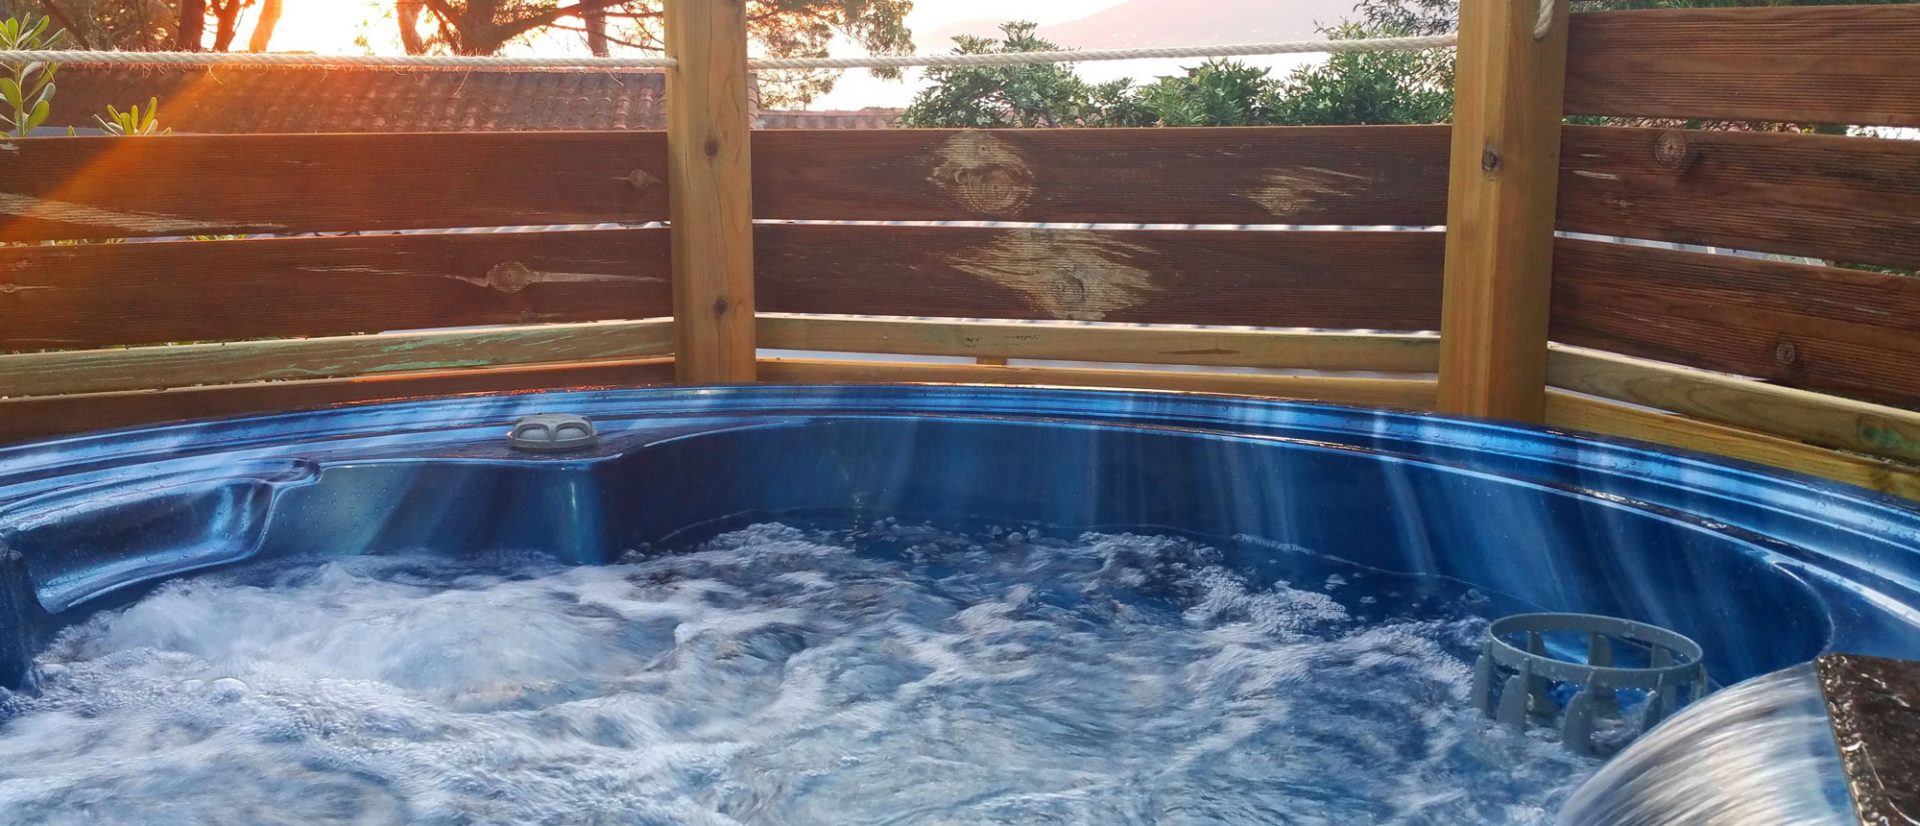 Clair De Lune : Mobil Home Spa Jacuzzi Vuemer Giens Camping Clairdelune